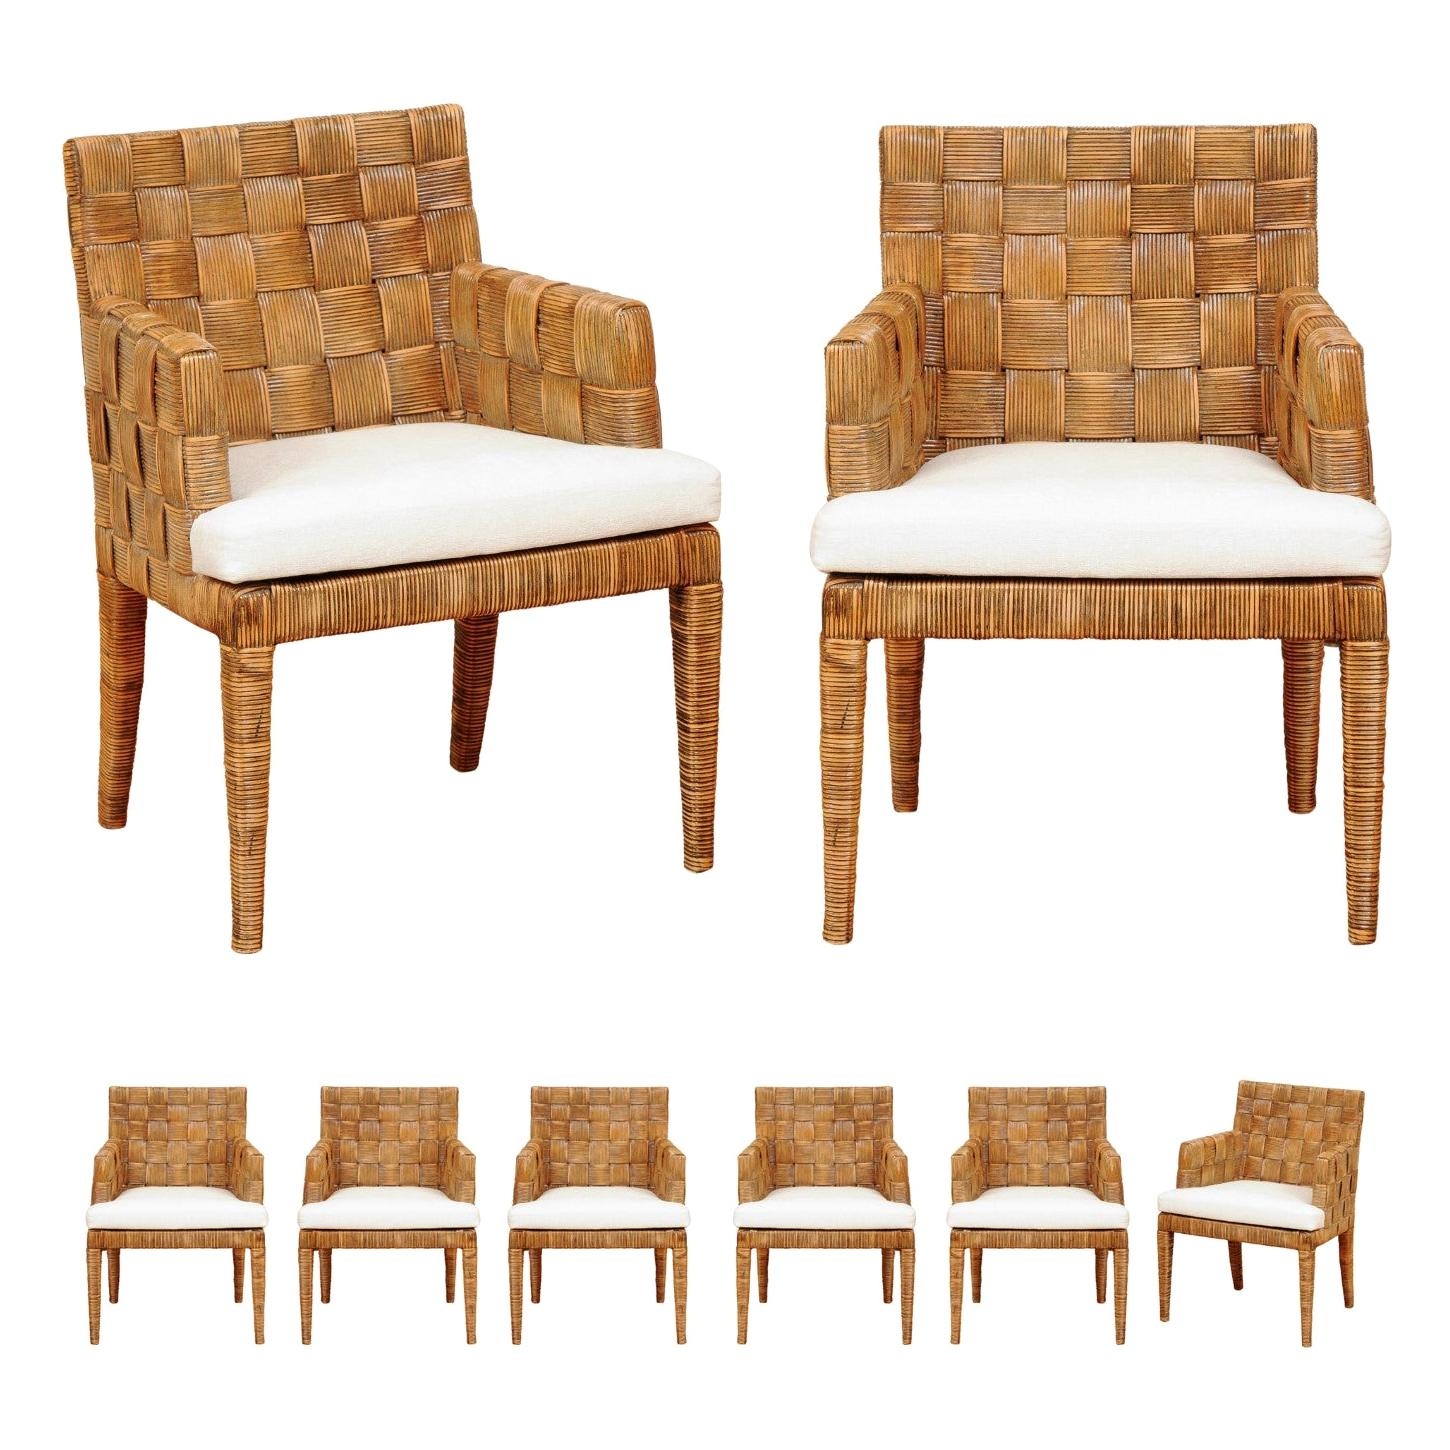 Stellar Set of 8 Block Island Arm Dining Chairs by John Hutton for Donghia